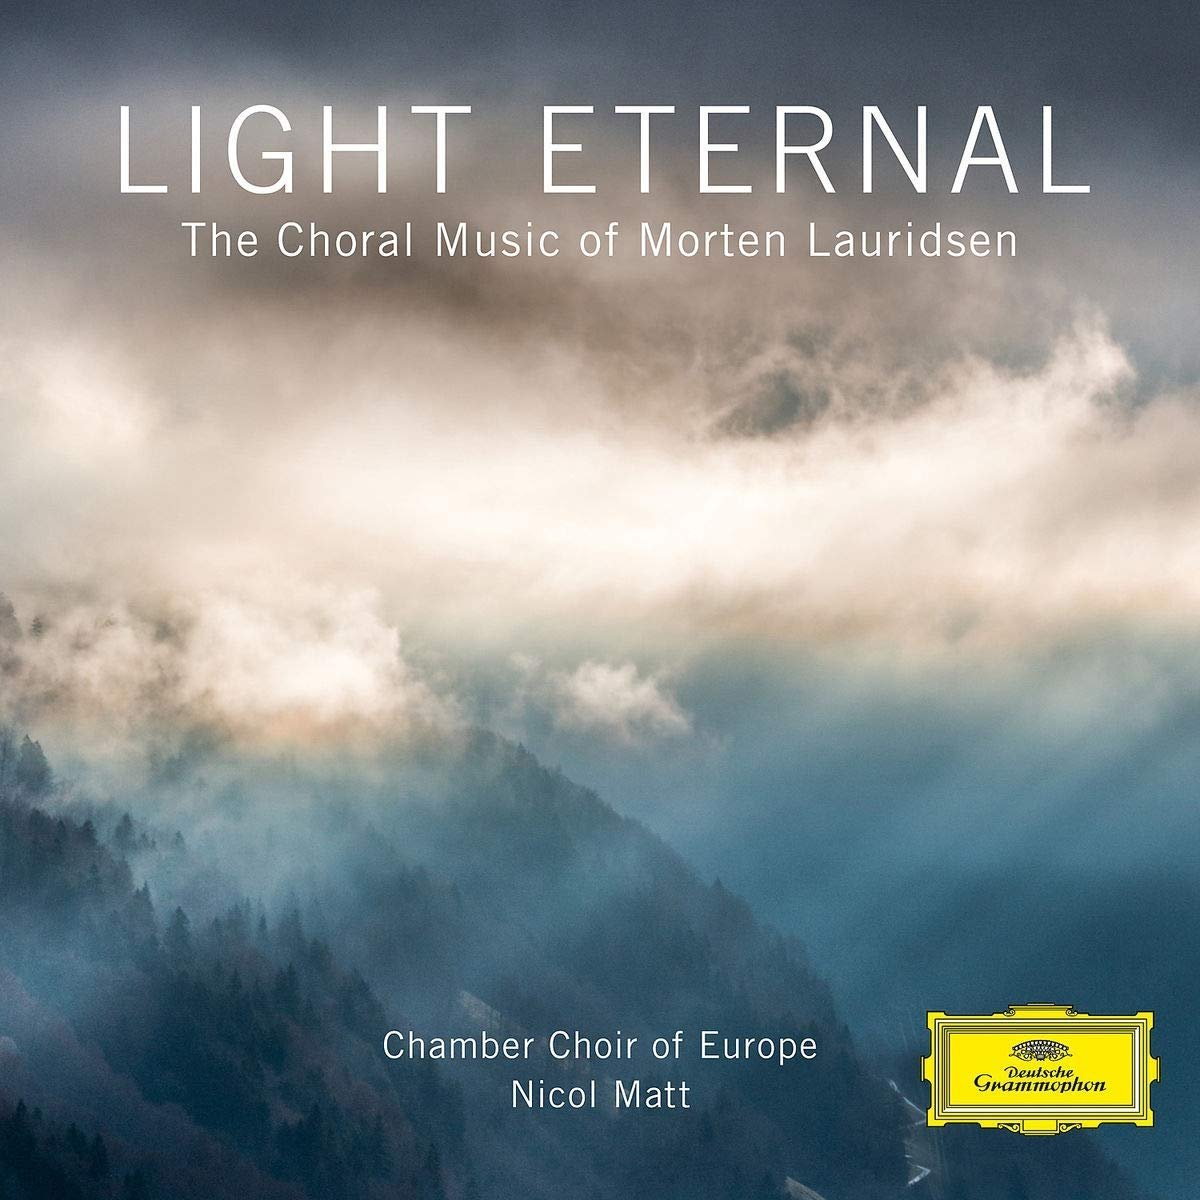 Light Eternal, The Choral Music of Morten Lauridsen (Trailer)